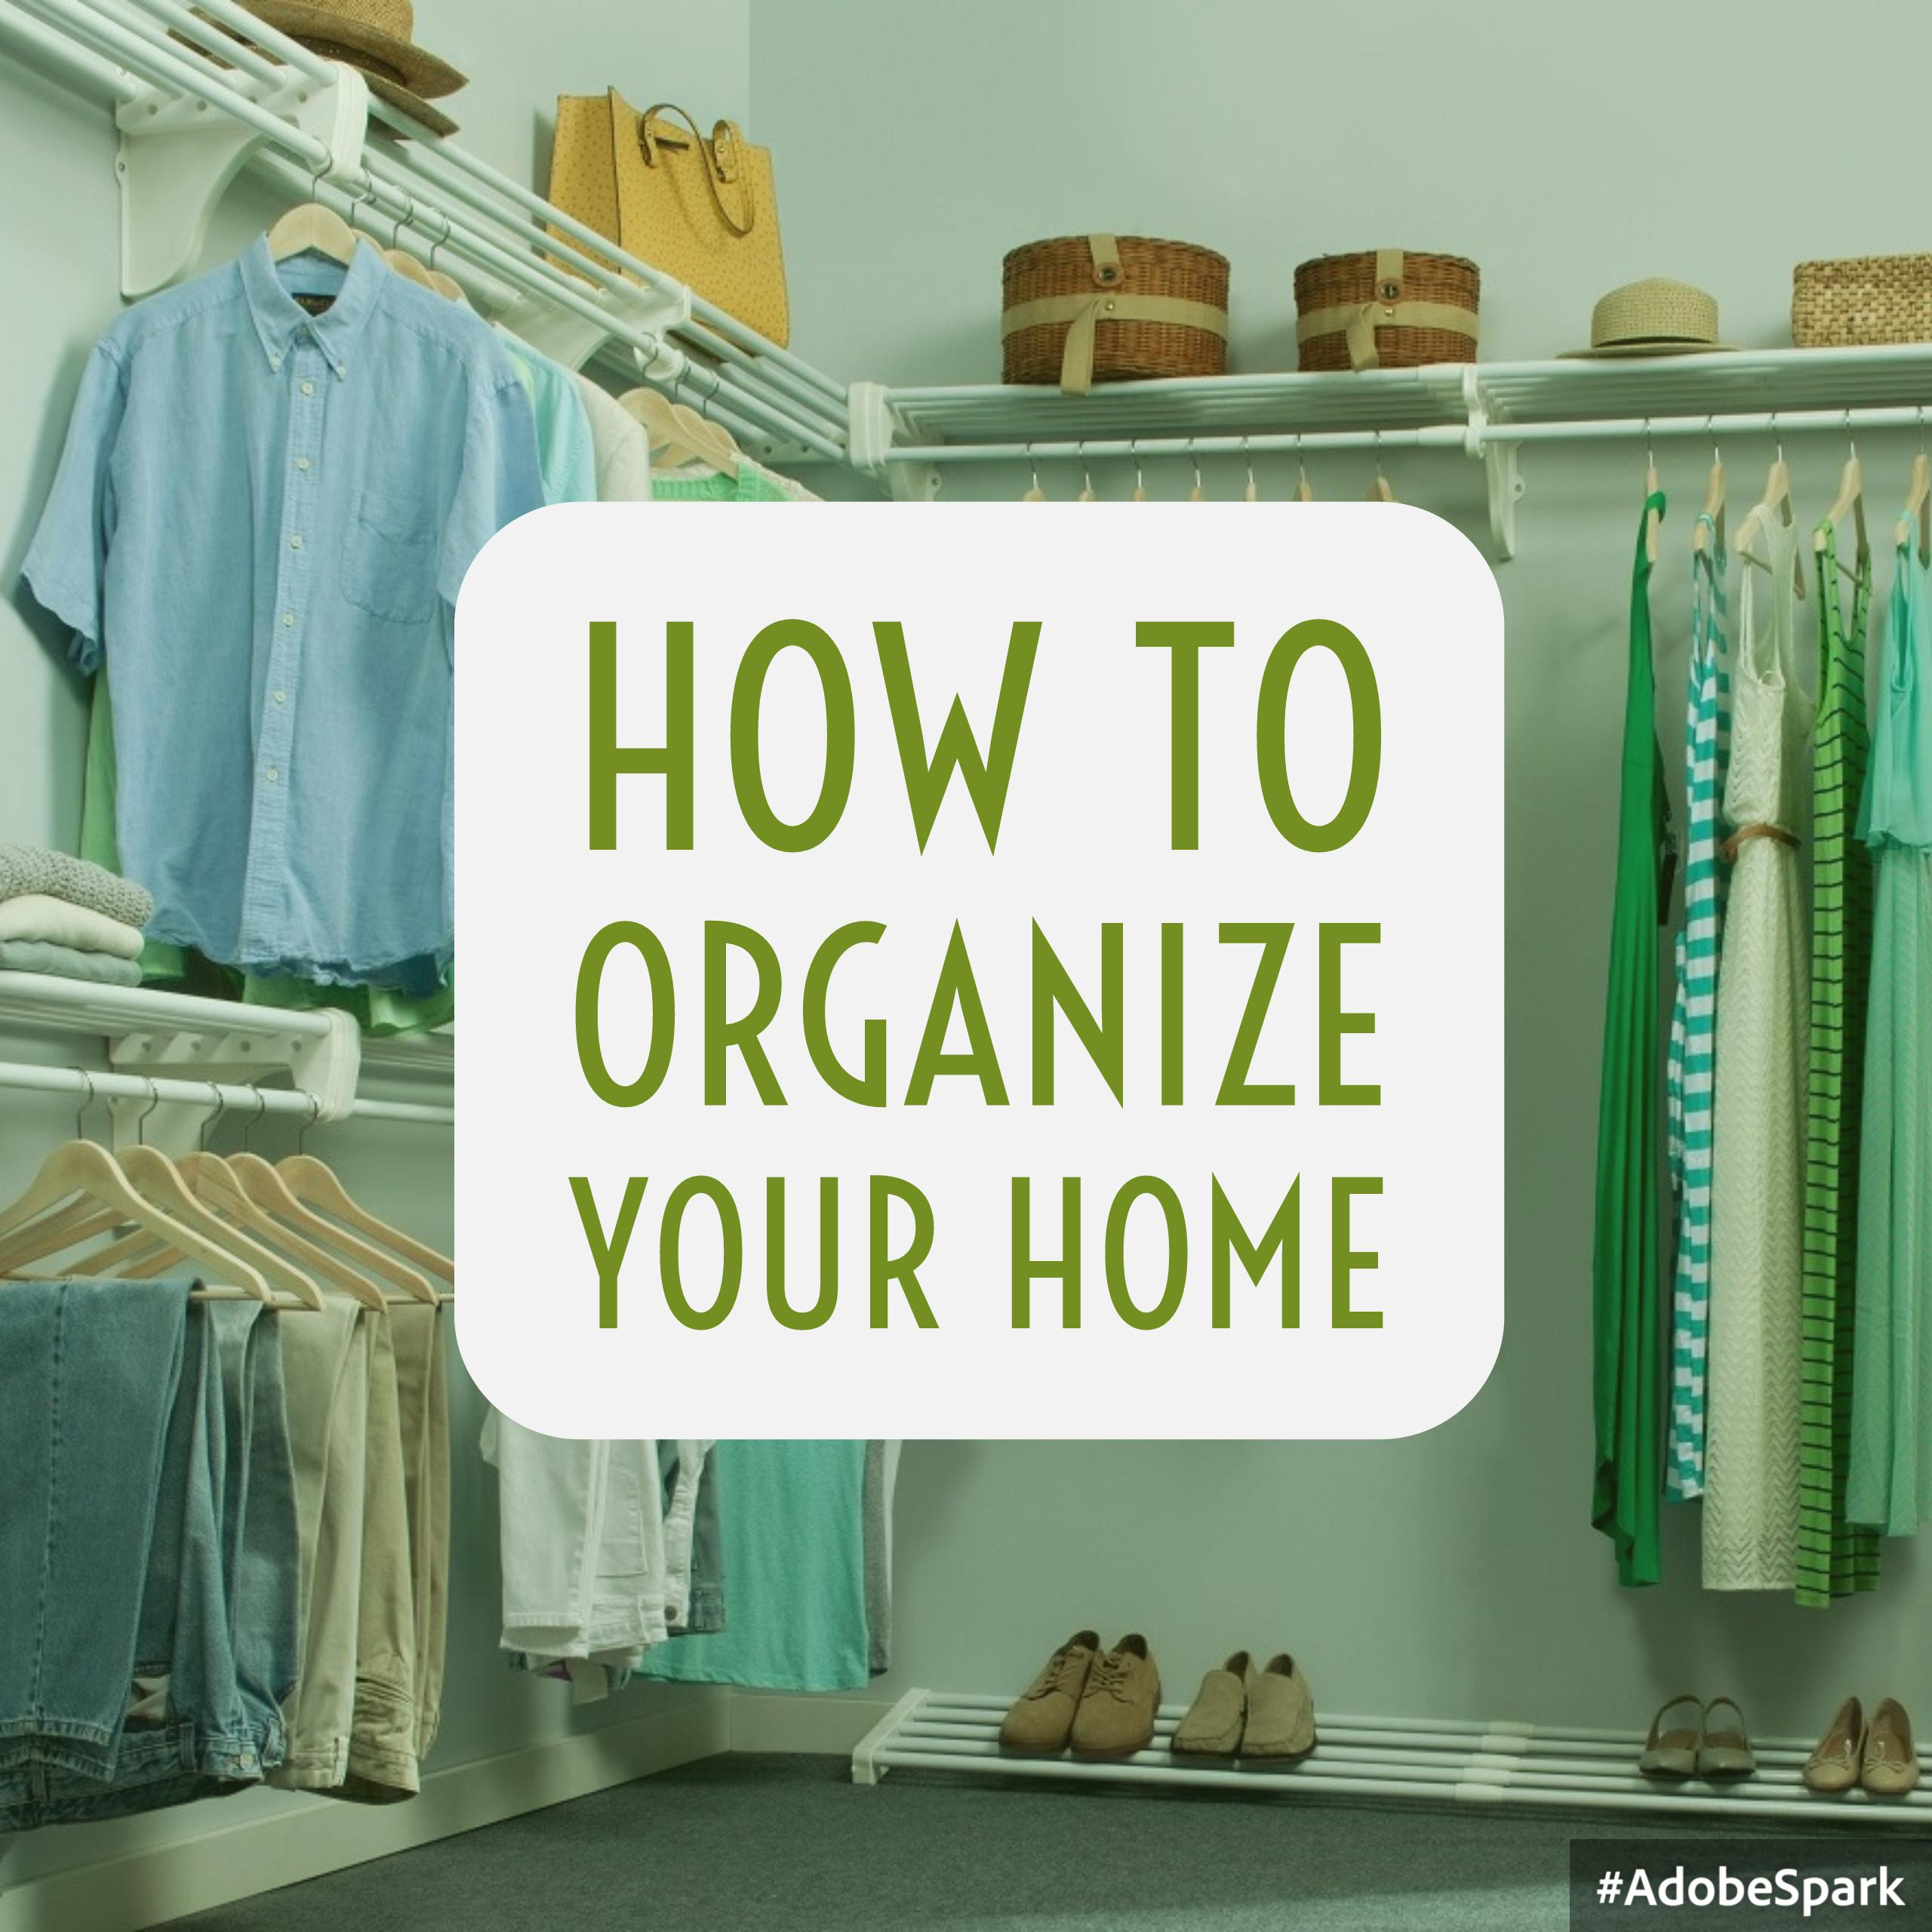 to organize or not to organize